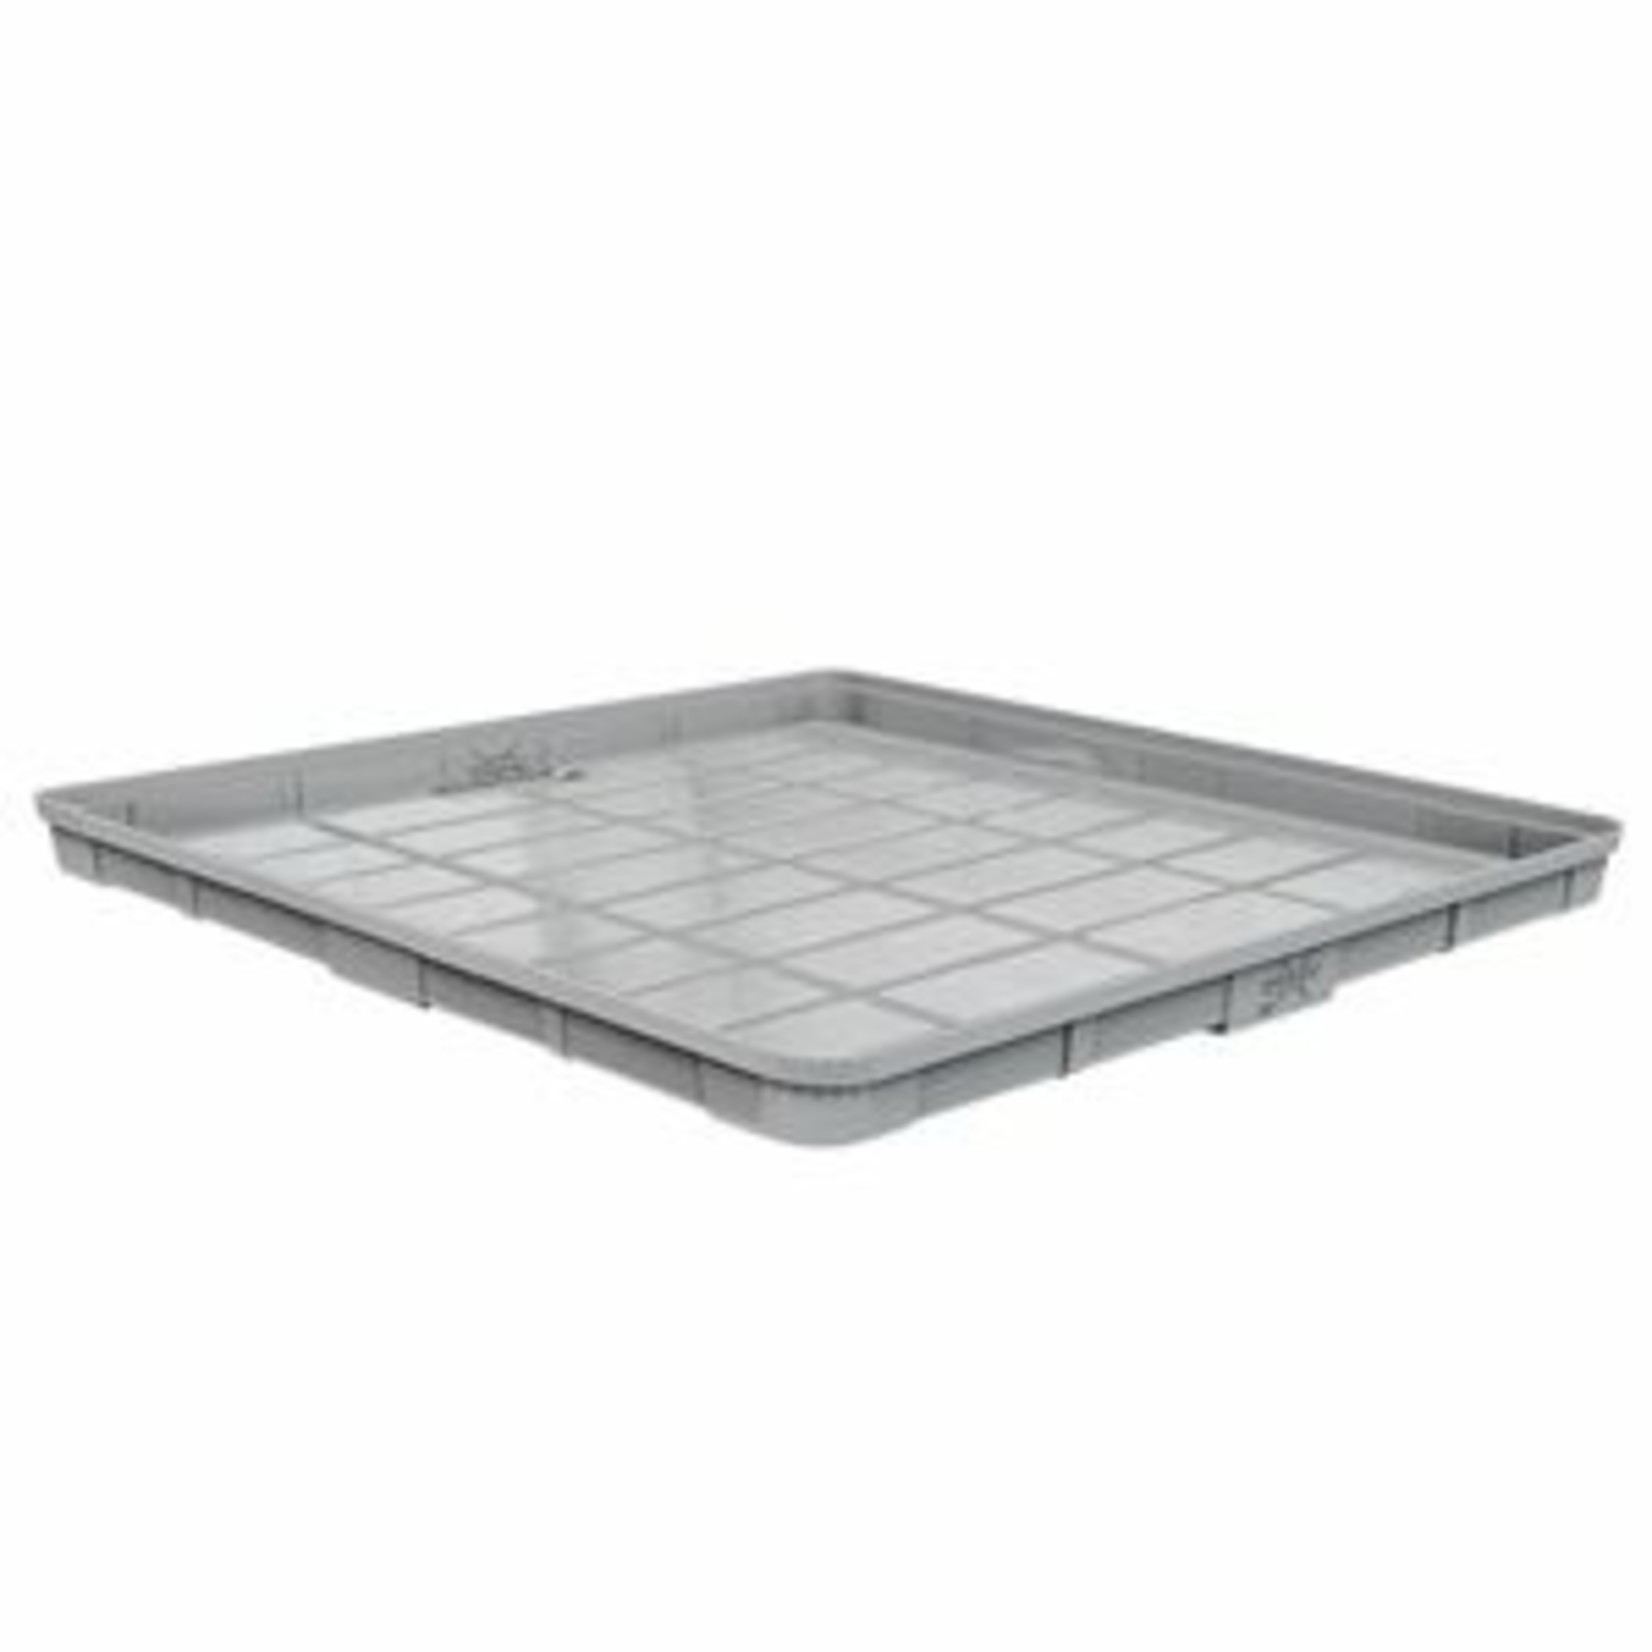 Commercial Tray 4' x 4' Grey